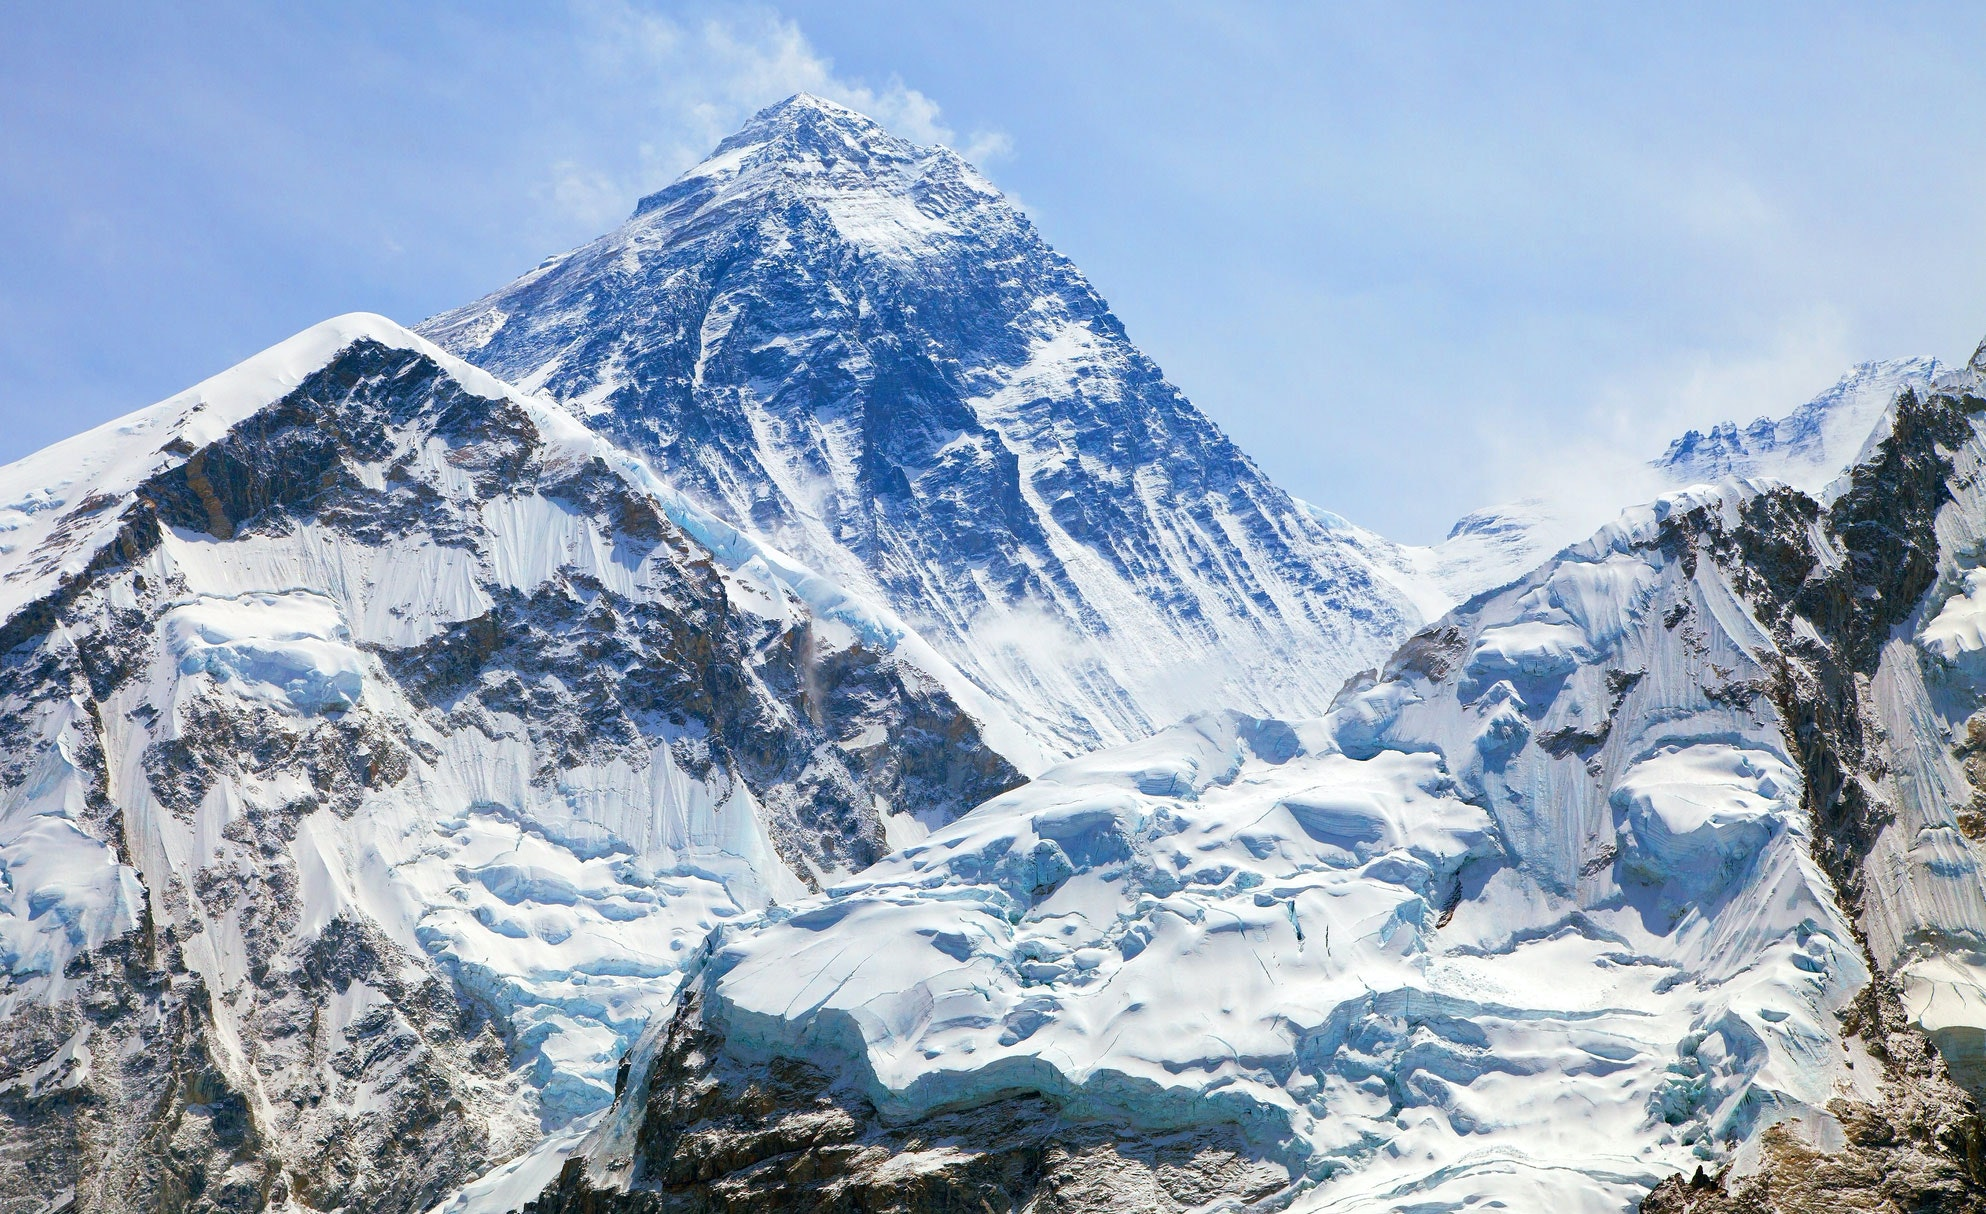 Mount Everest Facts | 50 Things You Should Know About The World's Highest Mountain